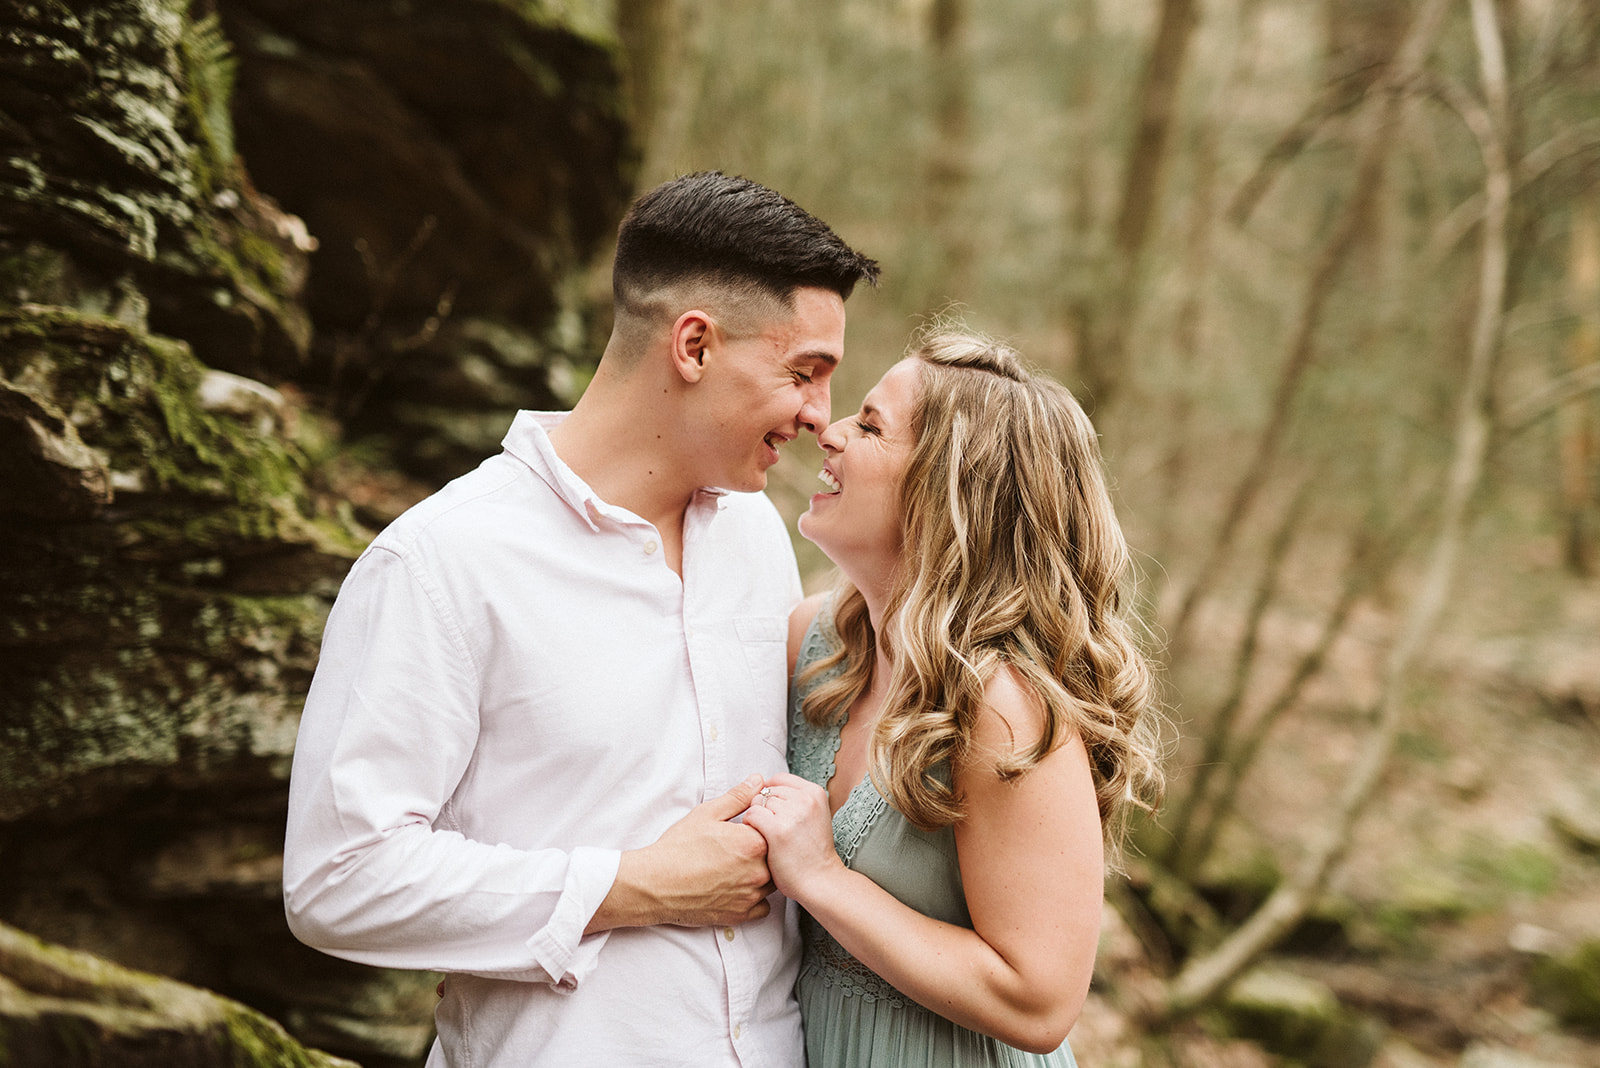 Laughing couple during their outdoorsy, adventurous engagement session near Philadelphia, Pennsylvania.